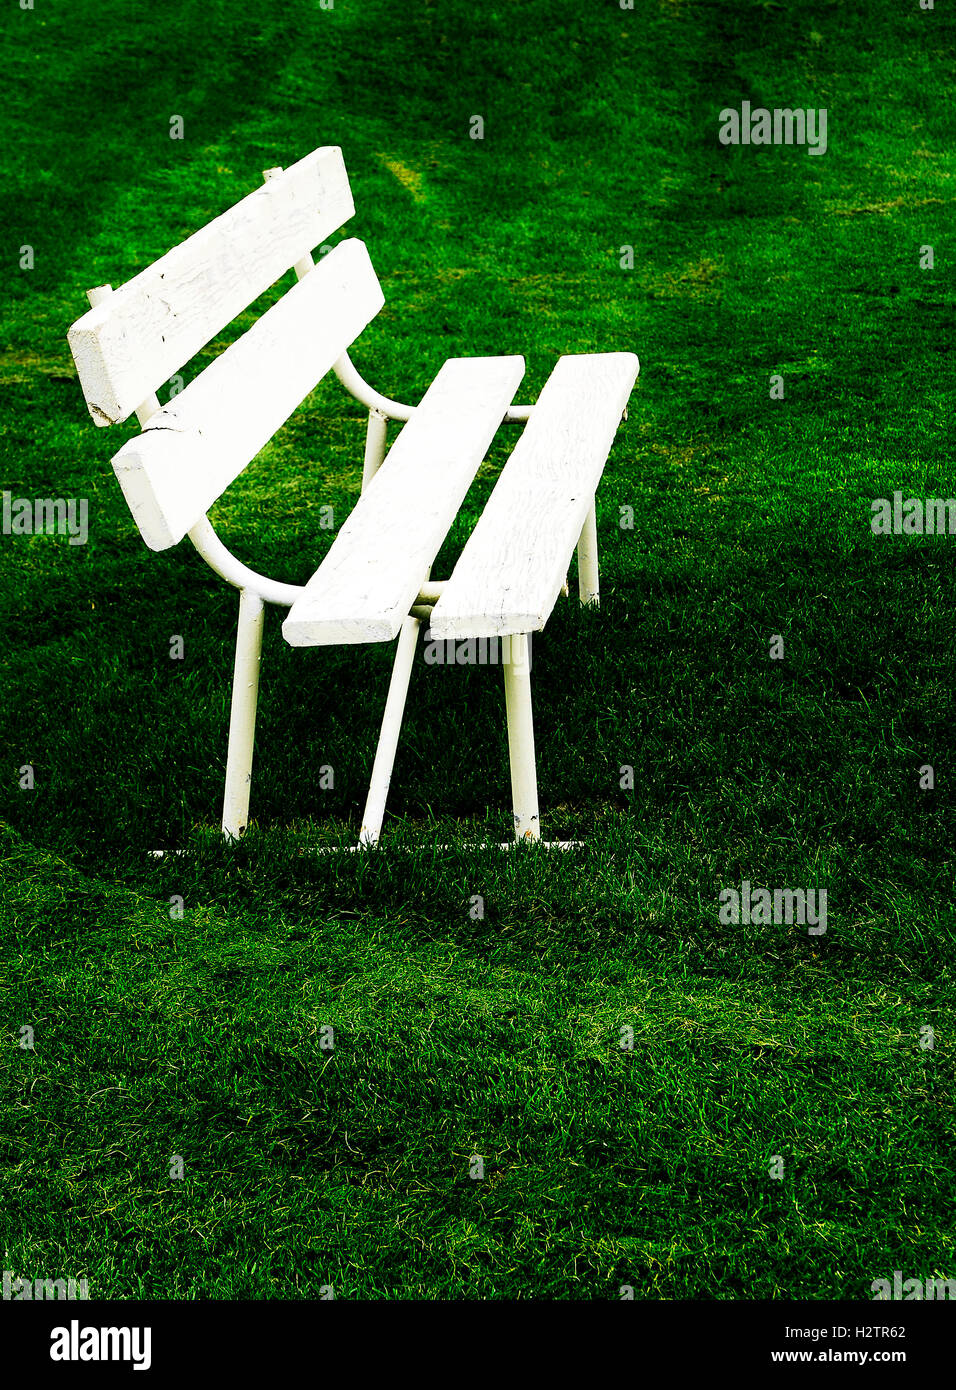 Peachy Rows Of White Park Benches For Sitting On Green Grass Stock Alphanode Cool Chair Designs And Ideas Alphanodeonline